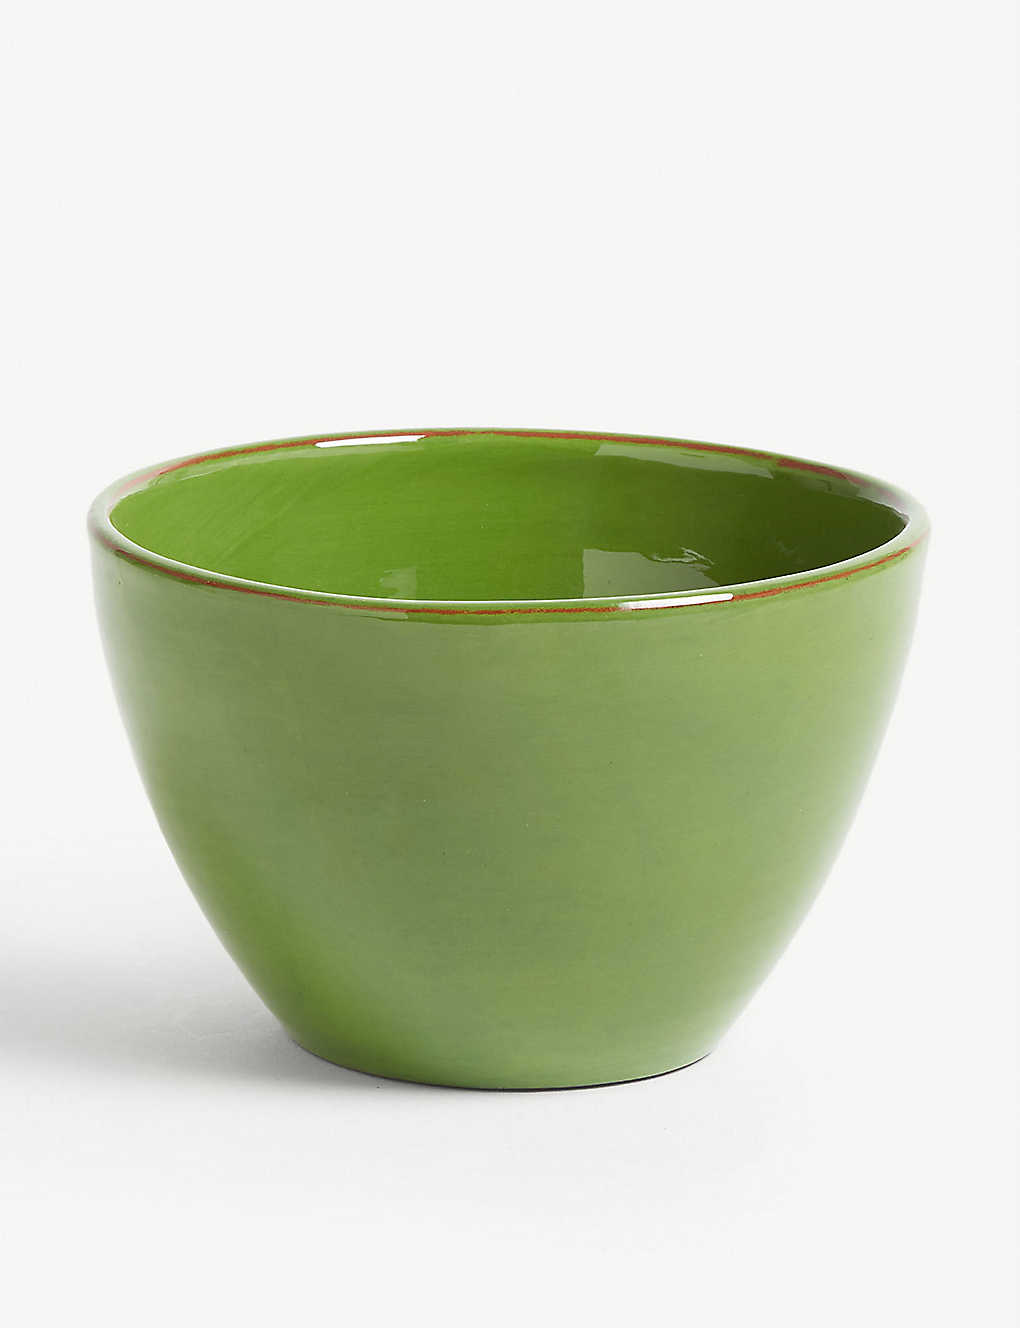 ARGILE ET COULEURS: Condamine terracotta cereal bowl